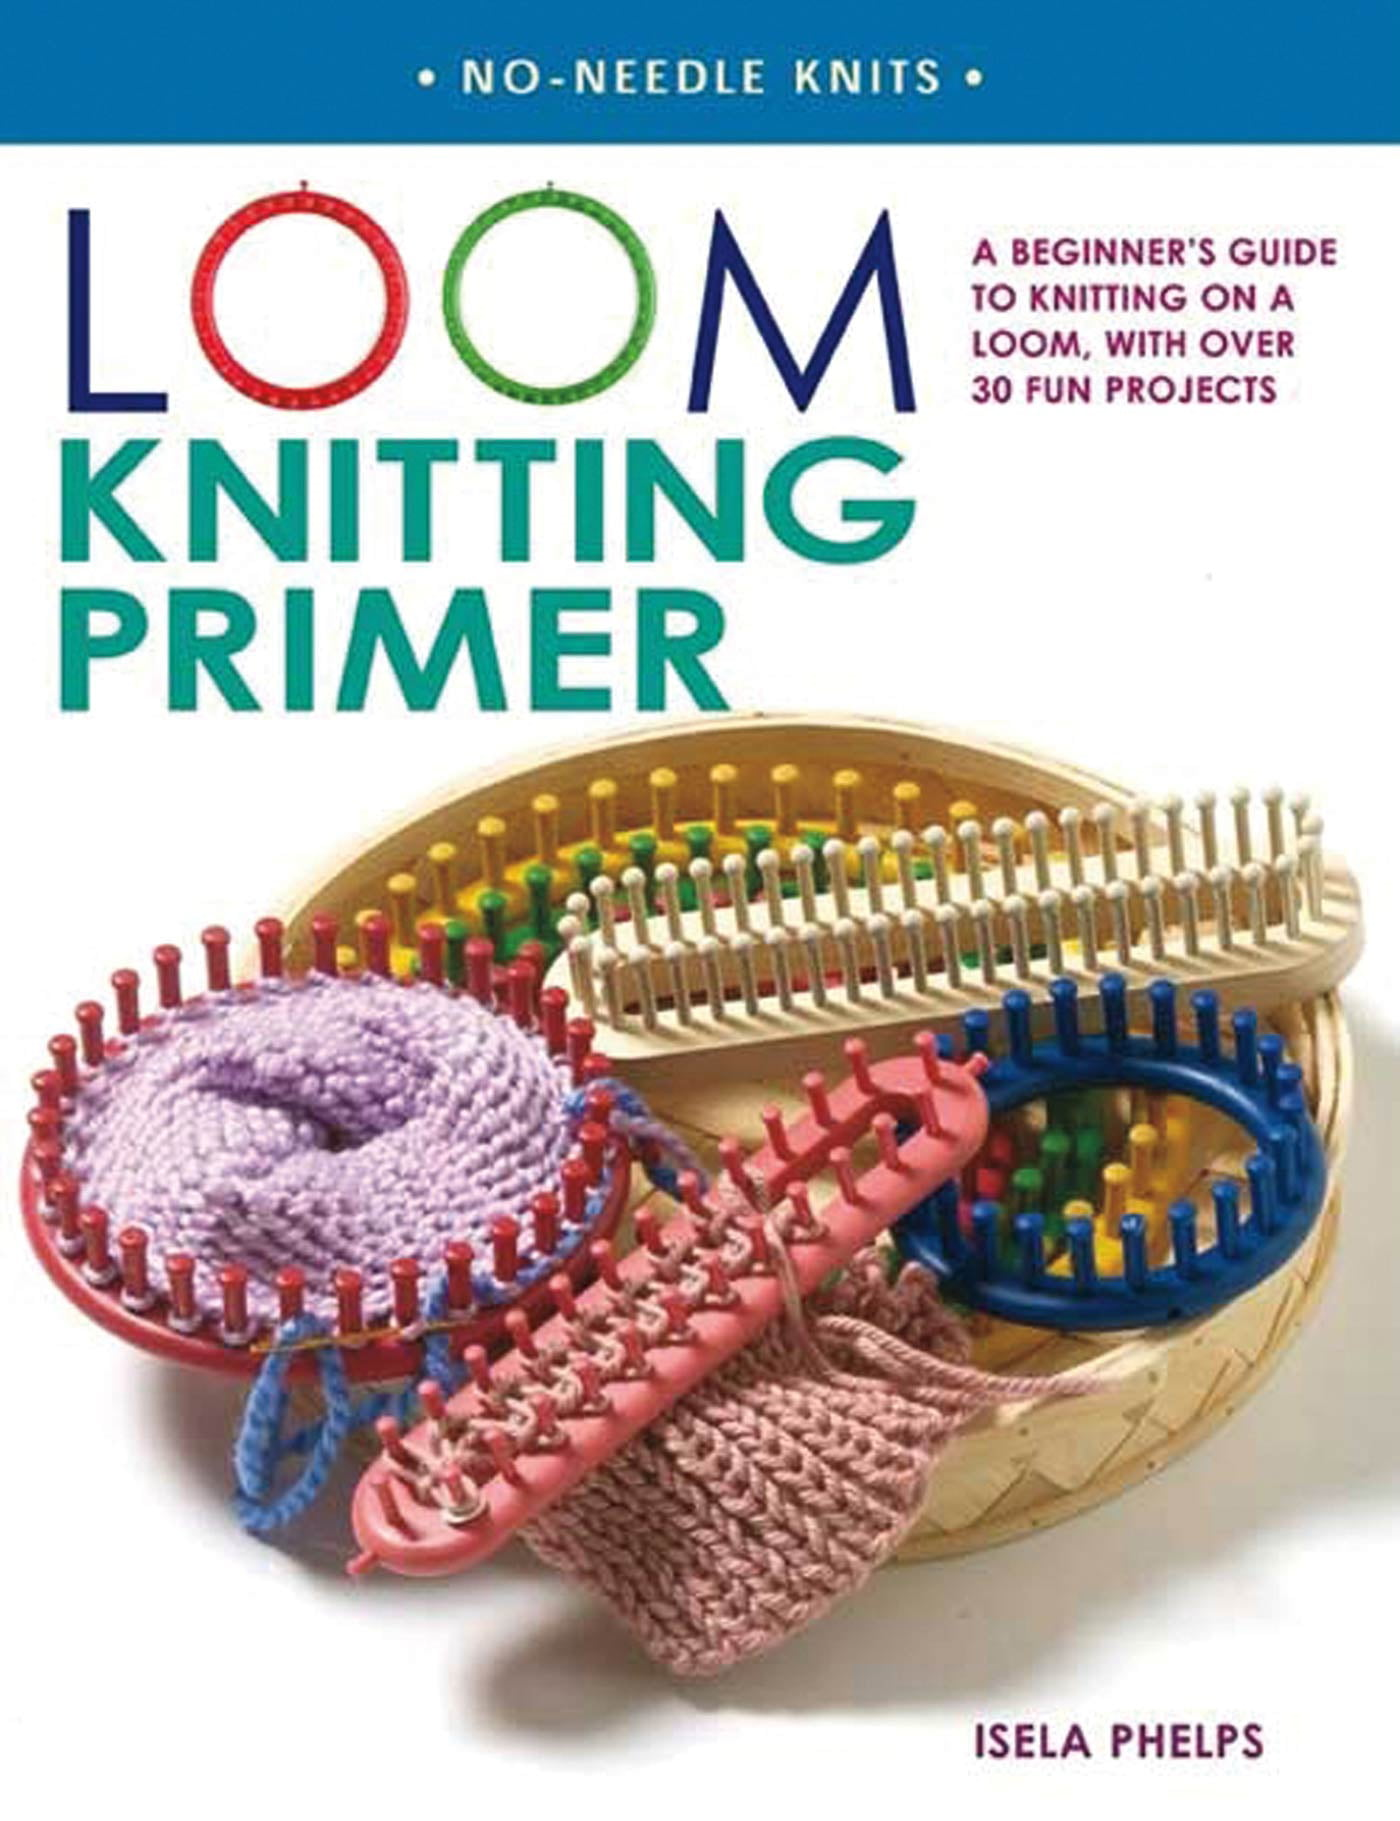 Loom Knitting Primer : A Beginner's Guide to Knitting on a Loom, with Over  30 Fun Projects - Walmart.com